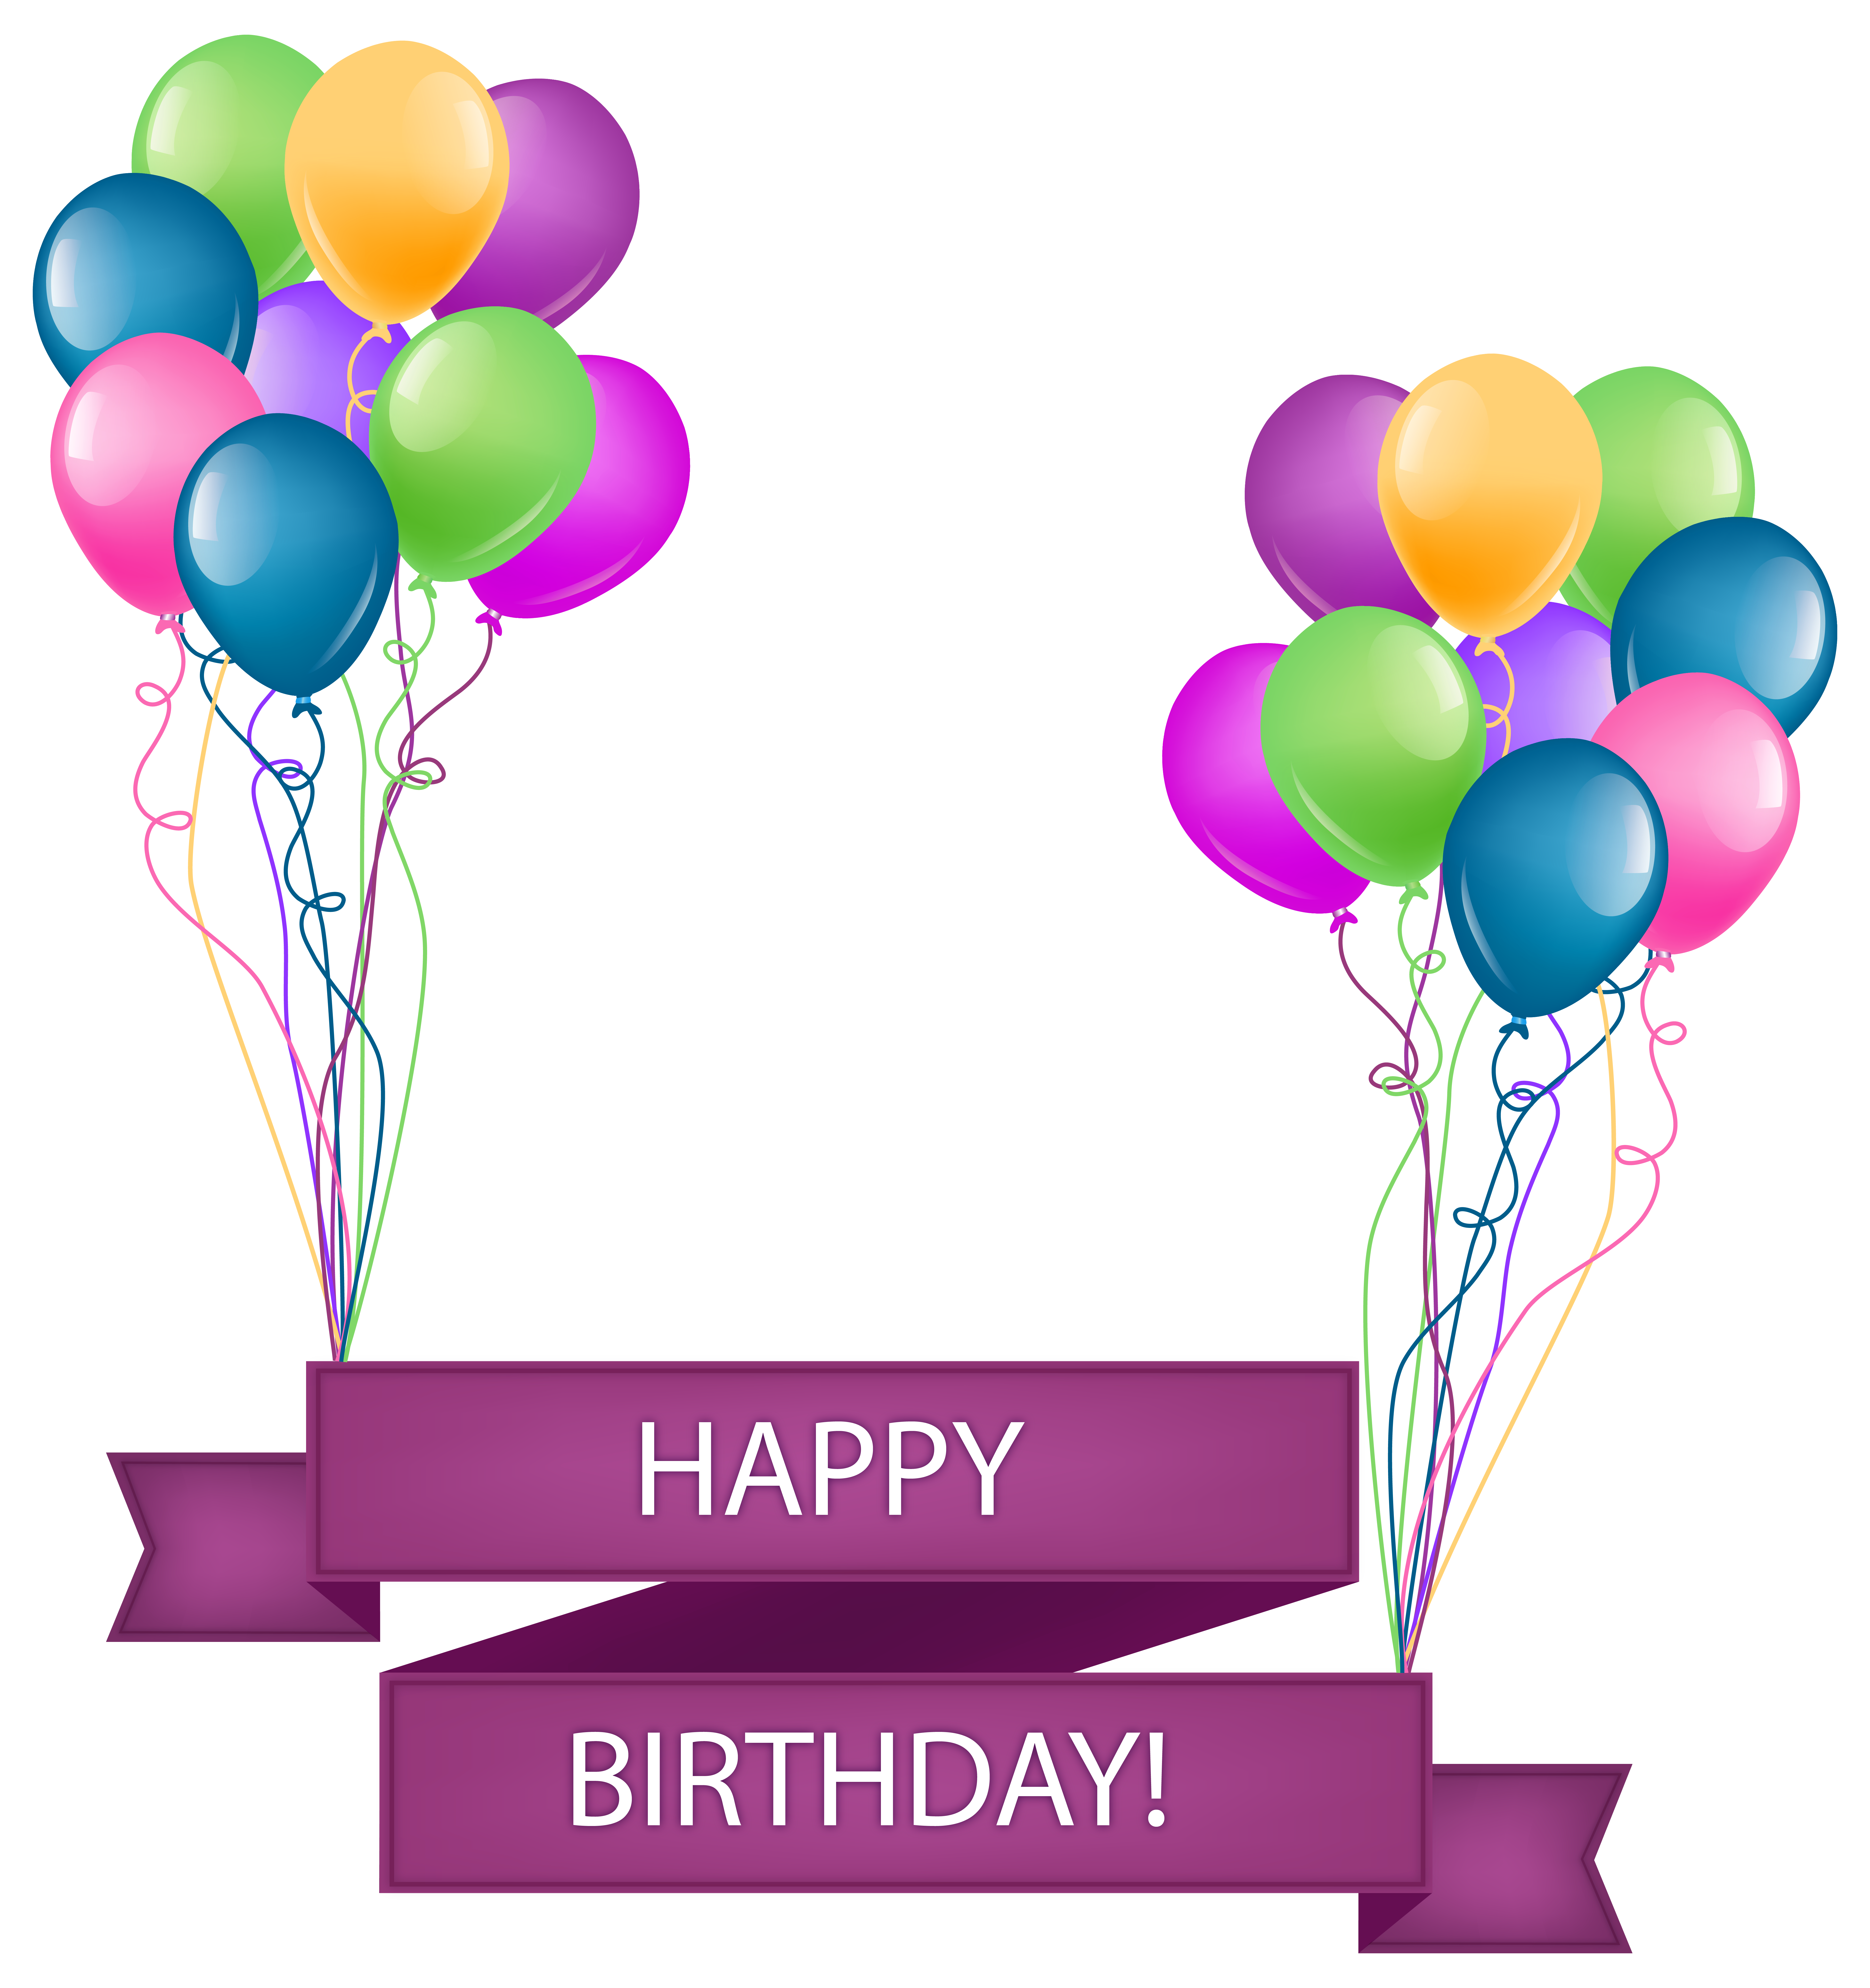 Birthday Party Png Transparent PNG Pictures - Free Icons ...